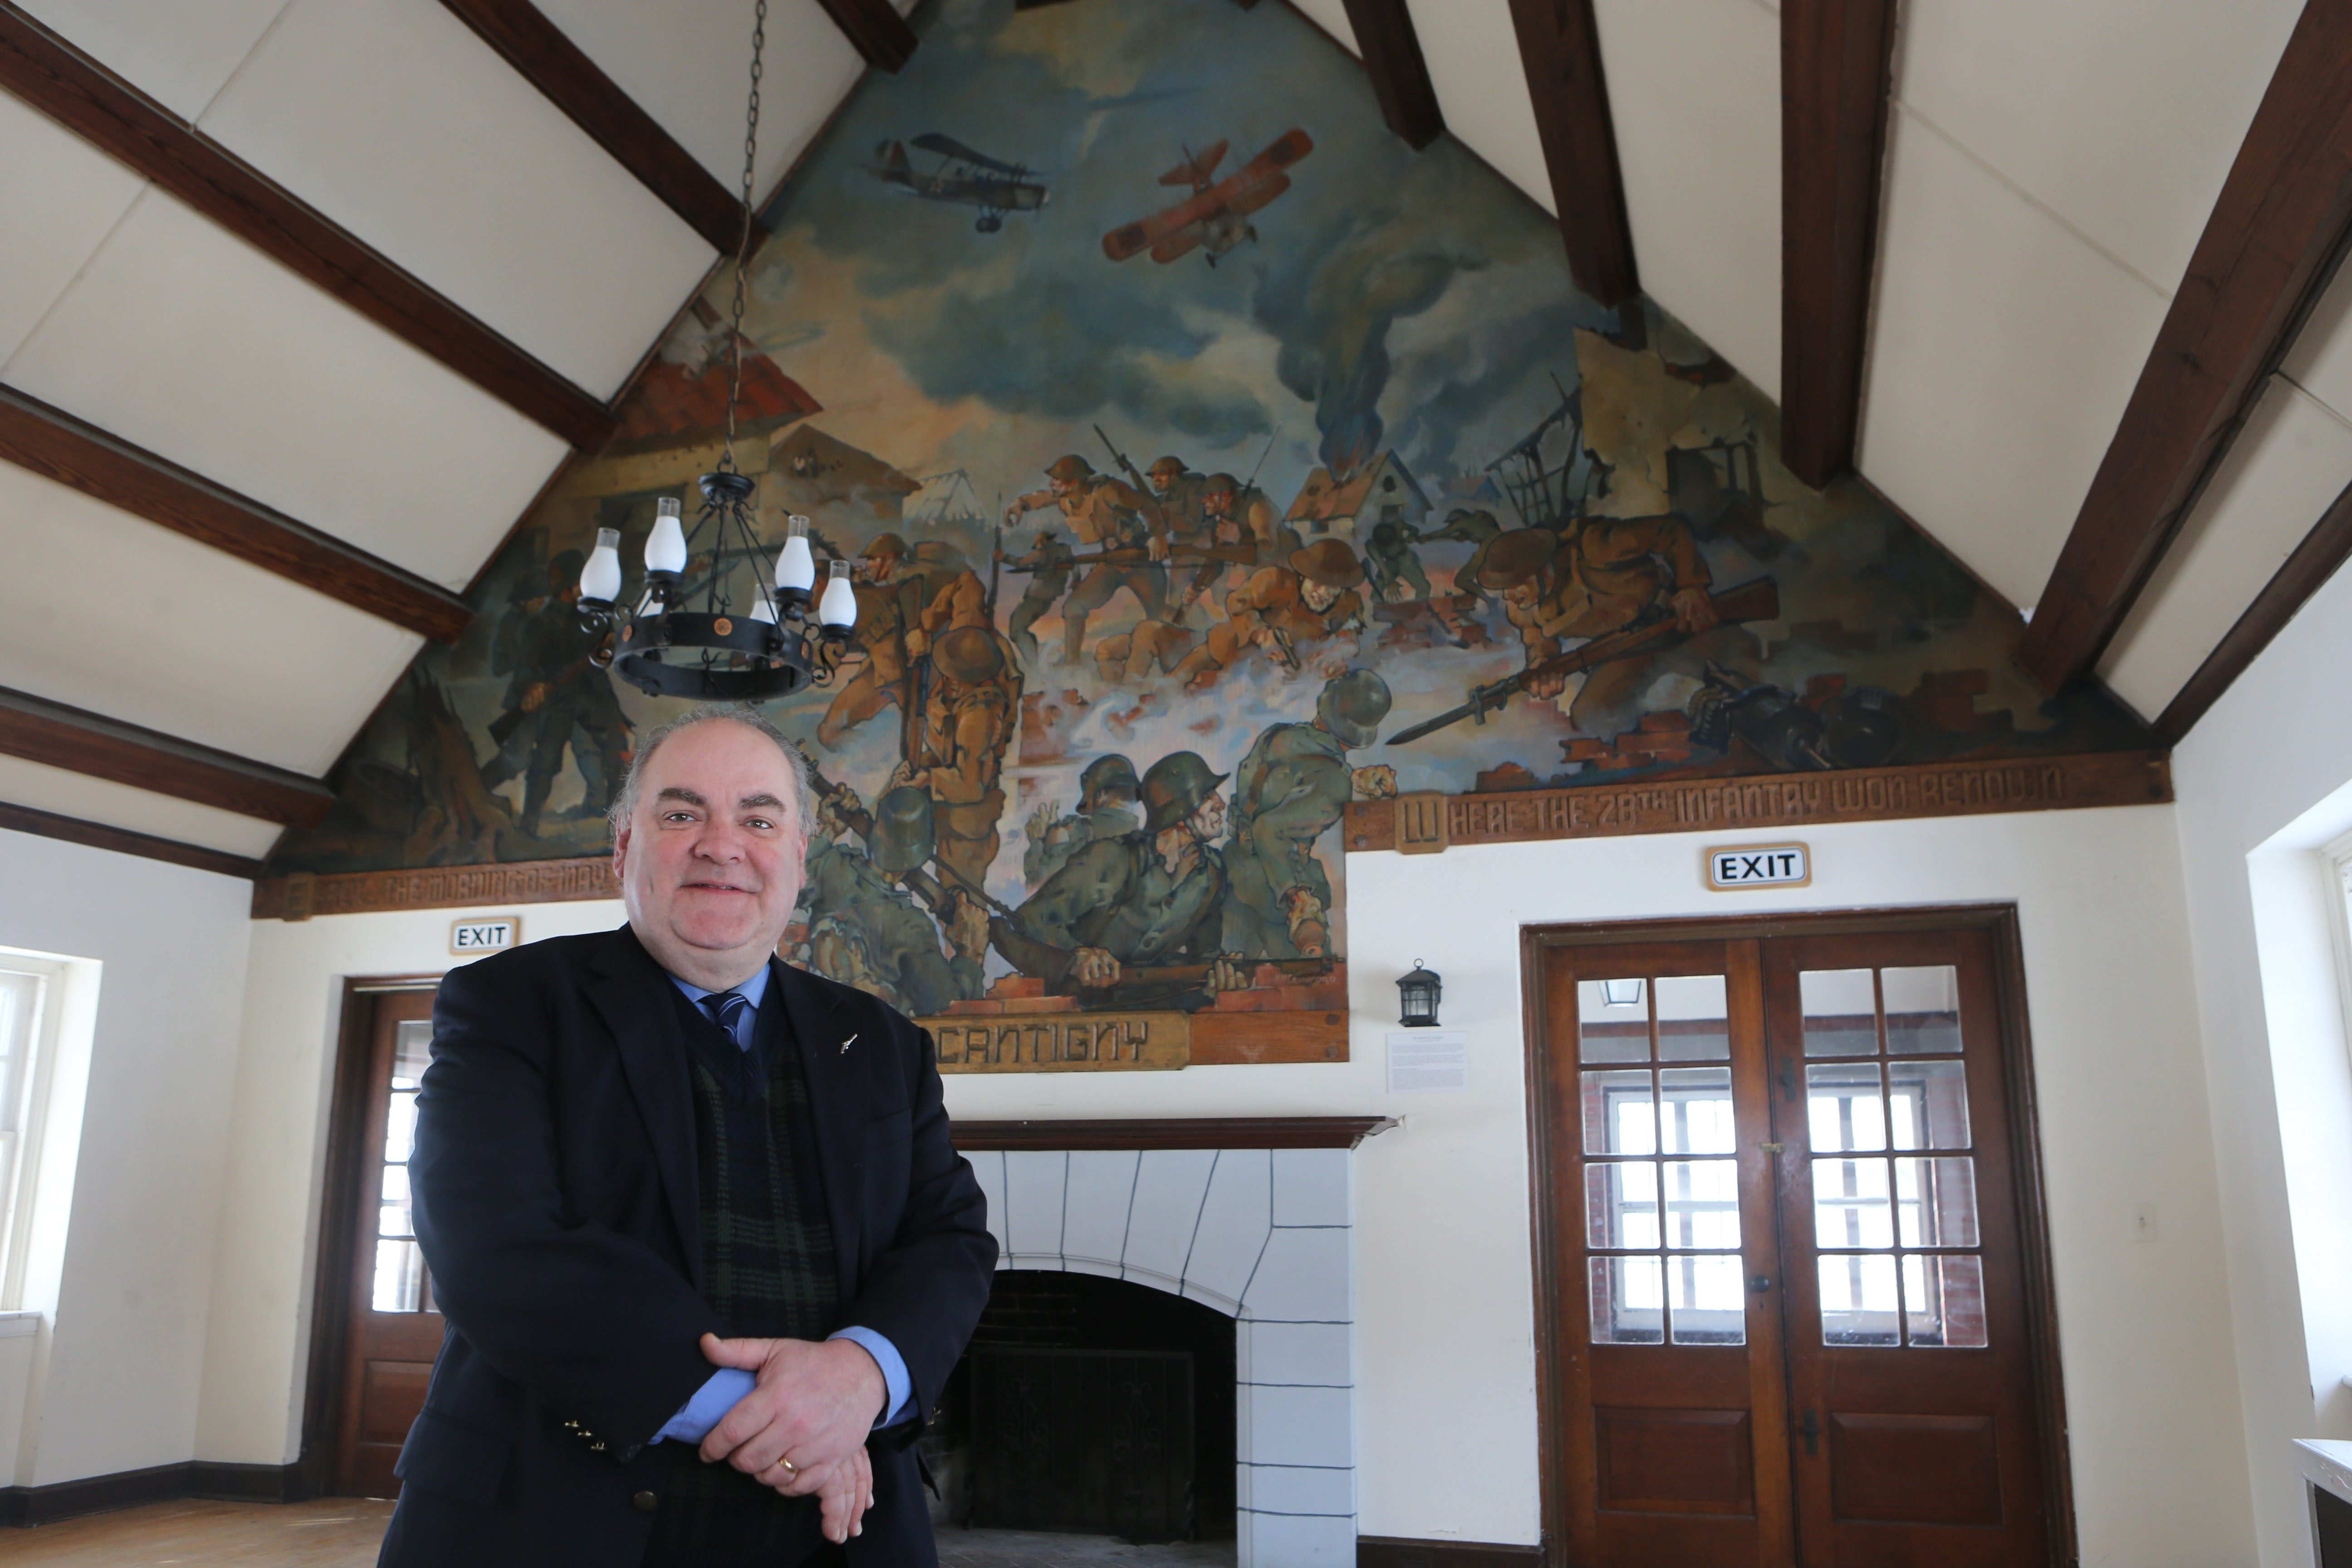 Robert Emerson, executive director of Old Fort Niagara, stands in front of the mural created by artist Hubert H. Crawford at the Officers Club in Fort Niagara State Park in Youngstown recently.